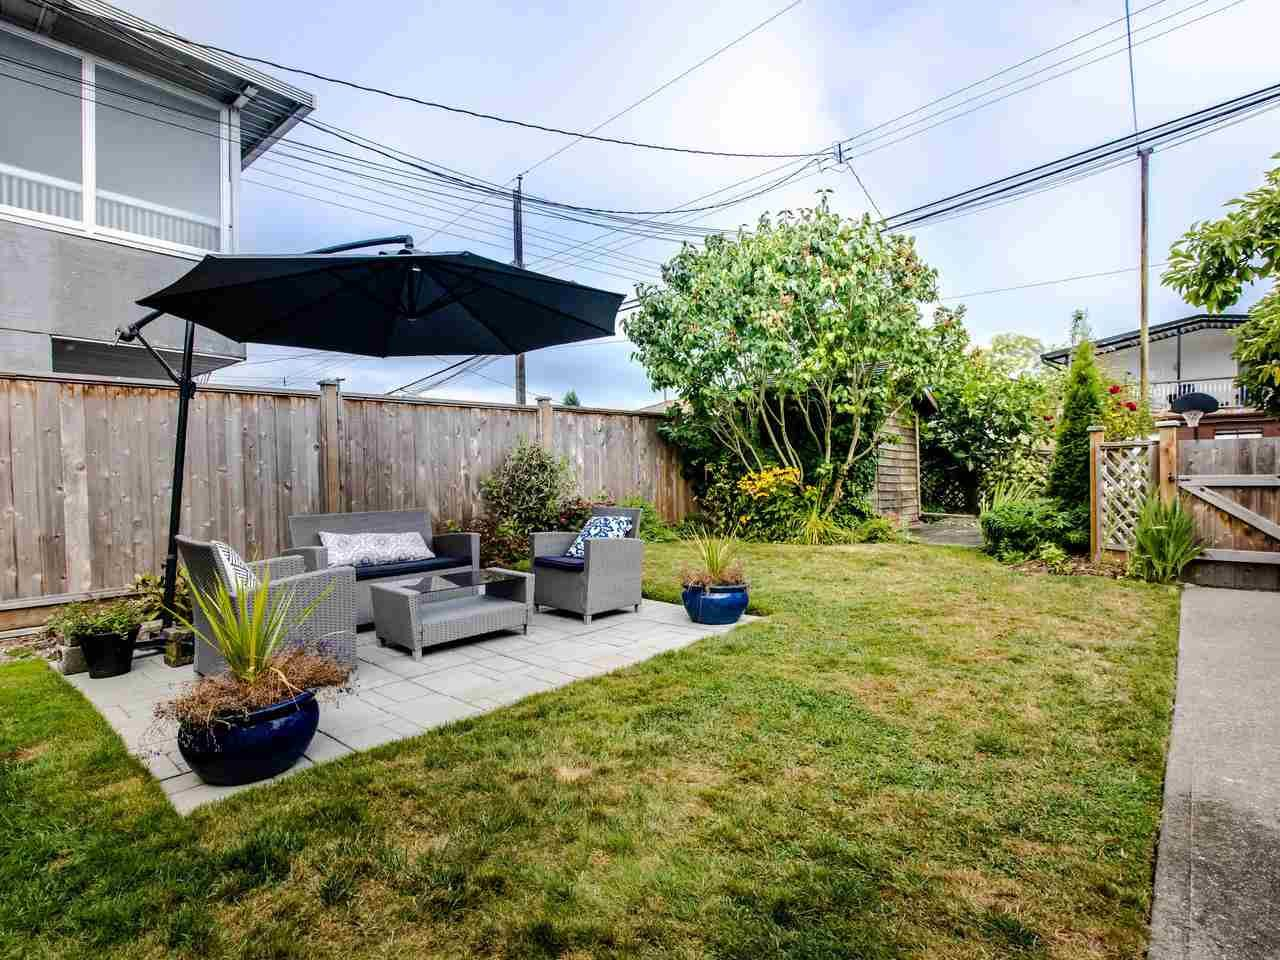 Photo 15: Photos: 4653 UNION STREET in Burnaby: Capitol Hill BN House for sale (Burnaby North)  : MLS®# R2493161